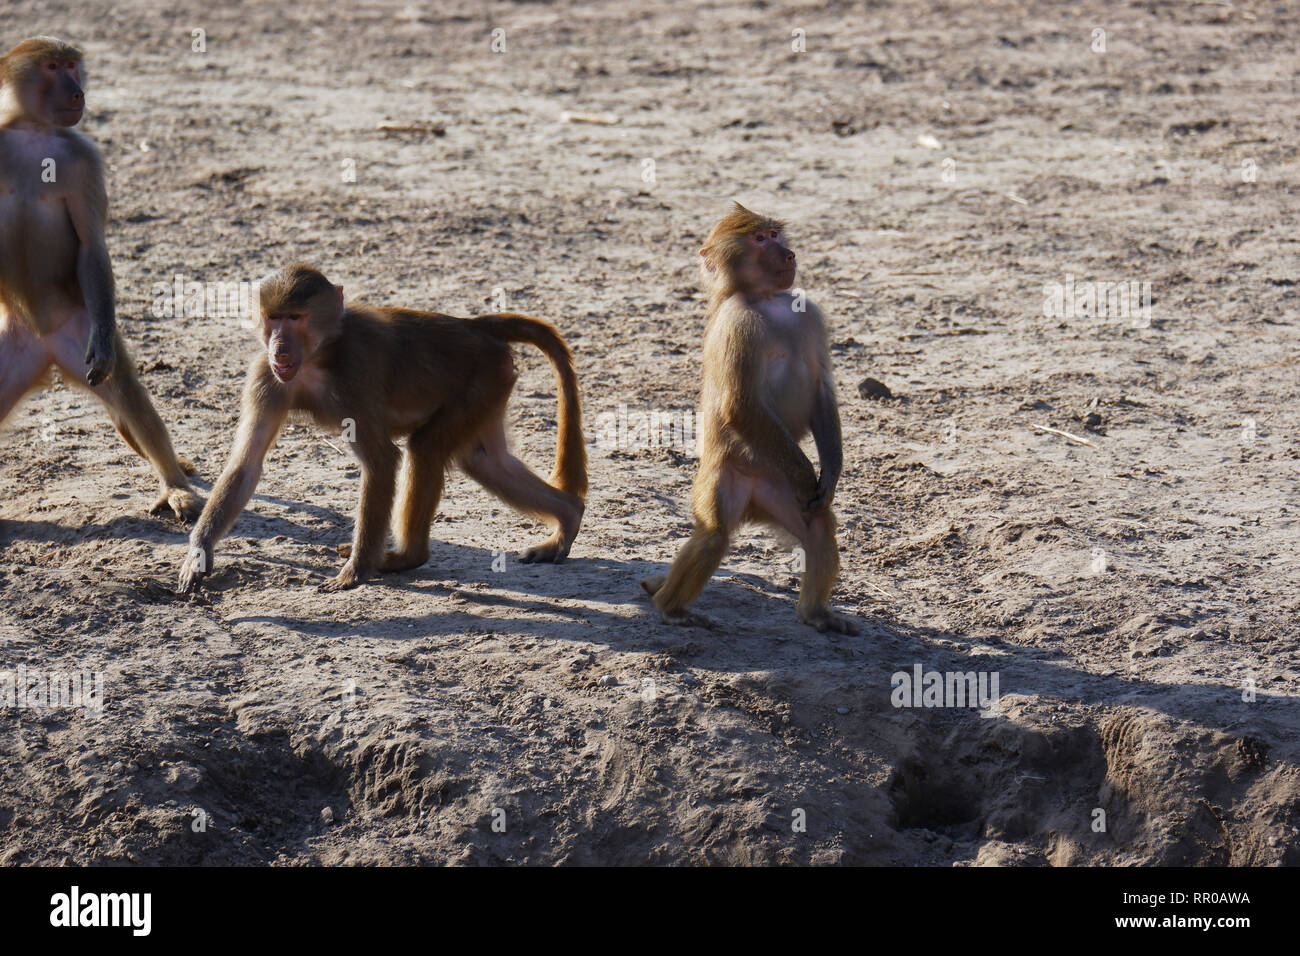 Sturdy monkeys standing upright sand bottom - Stock Image